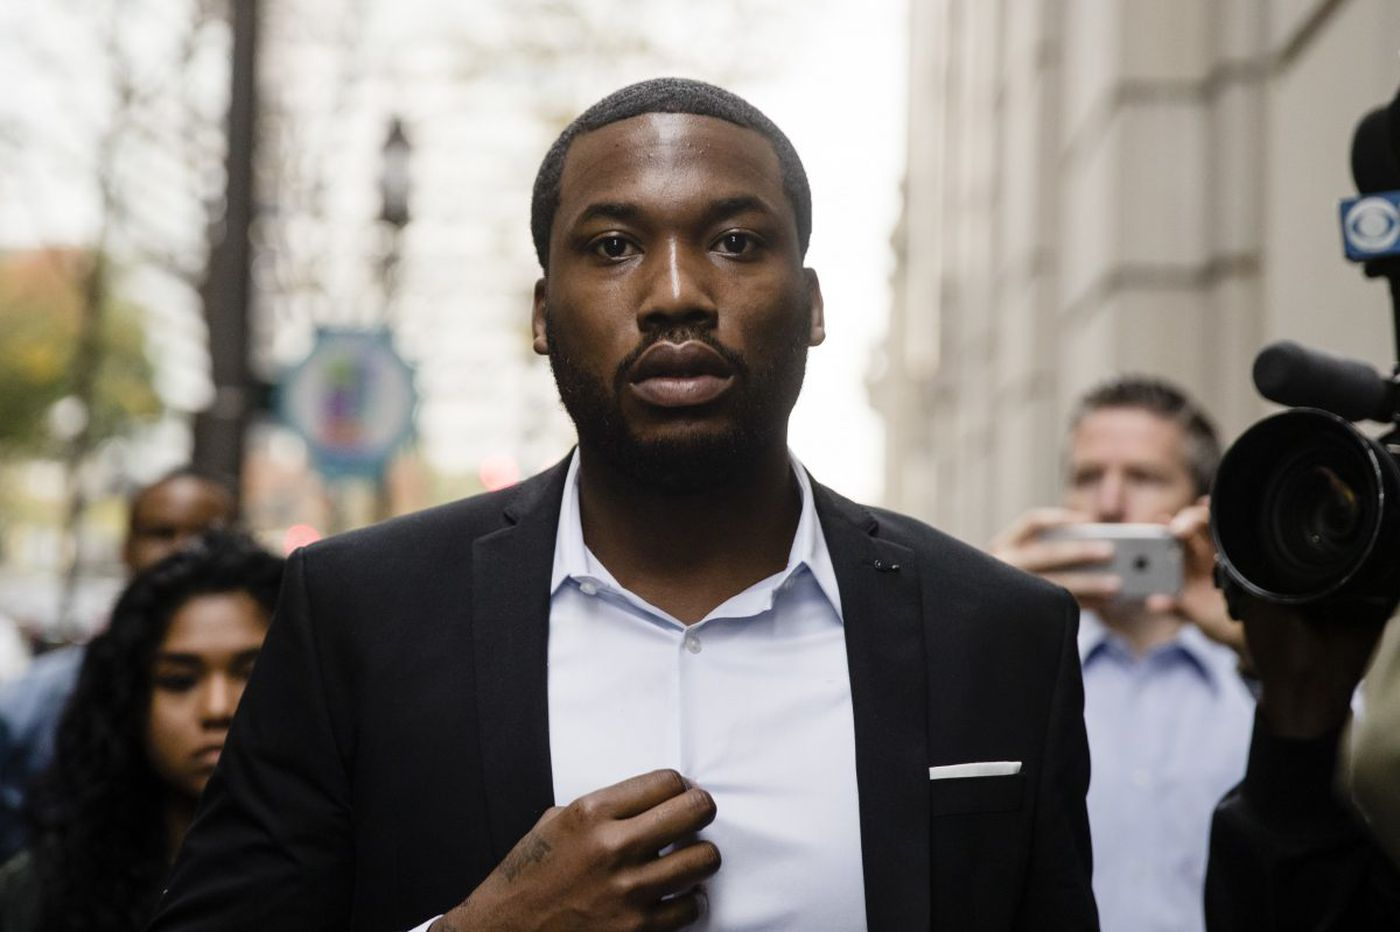 Want to keep the peace at Thanksgiving? Don't bring up Meek Mill | Jenice Armstrong